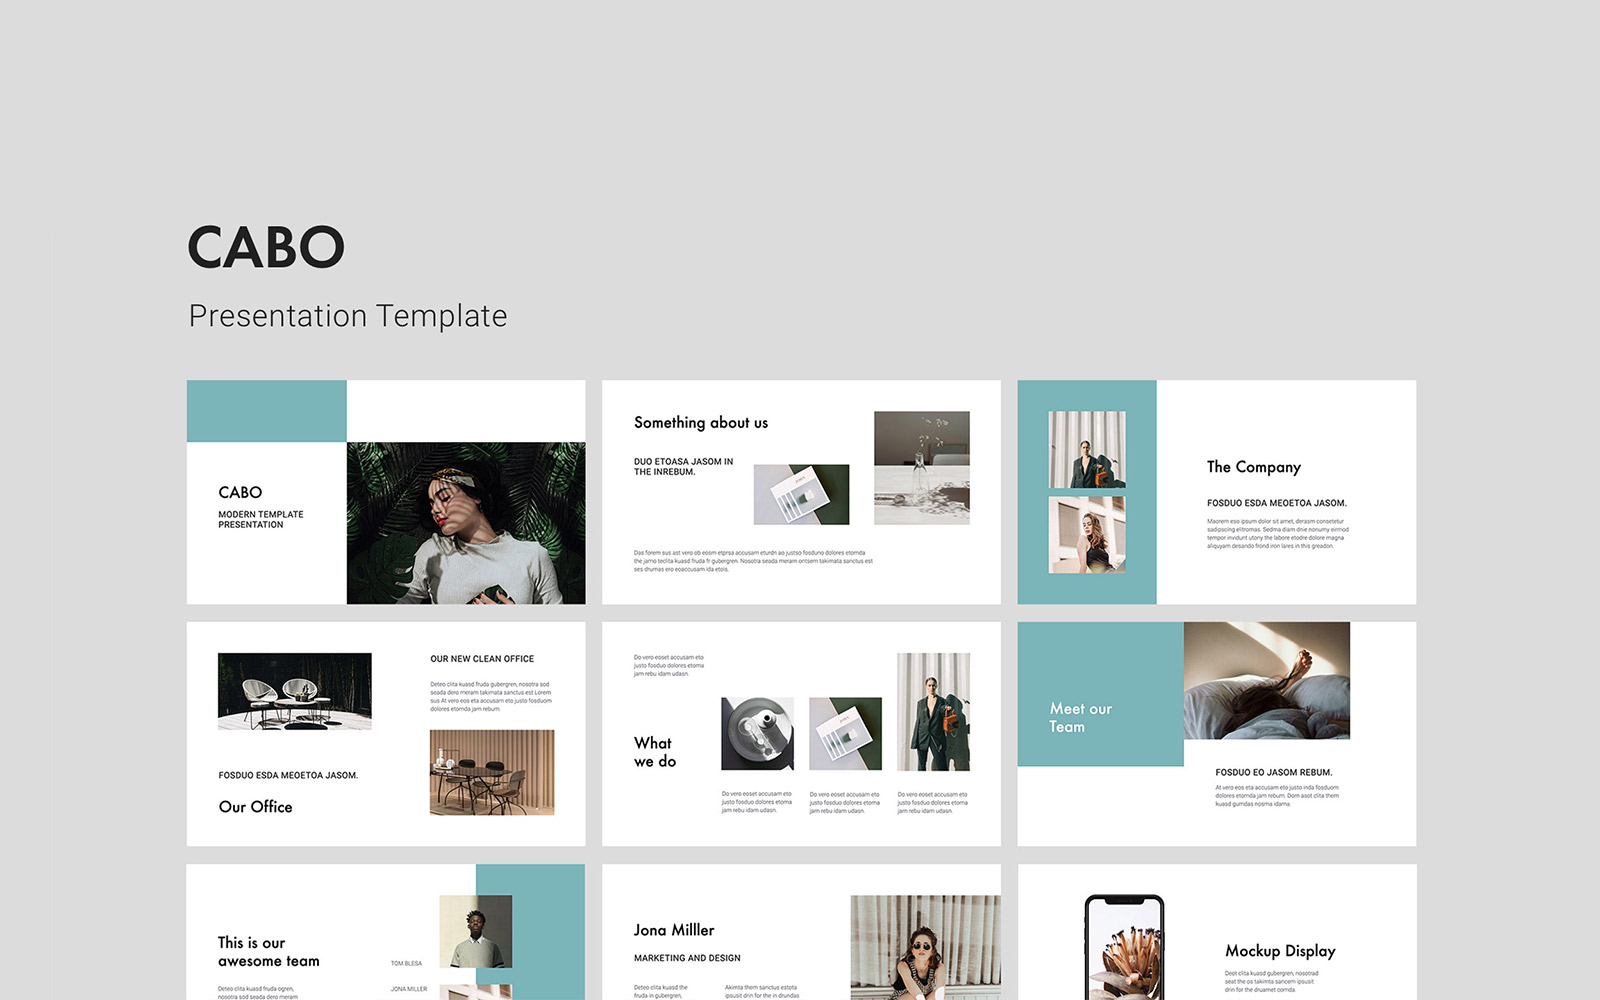 CABO - Presentation PowerPoint Template